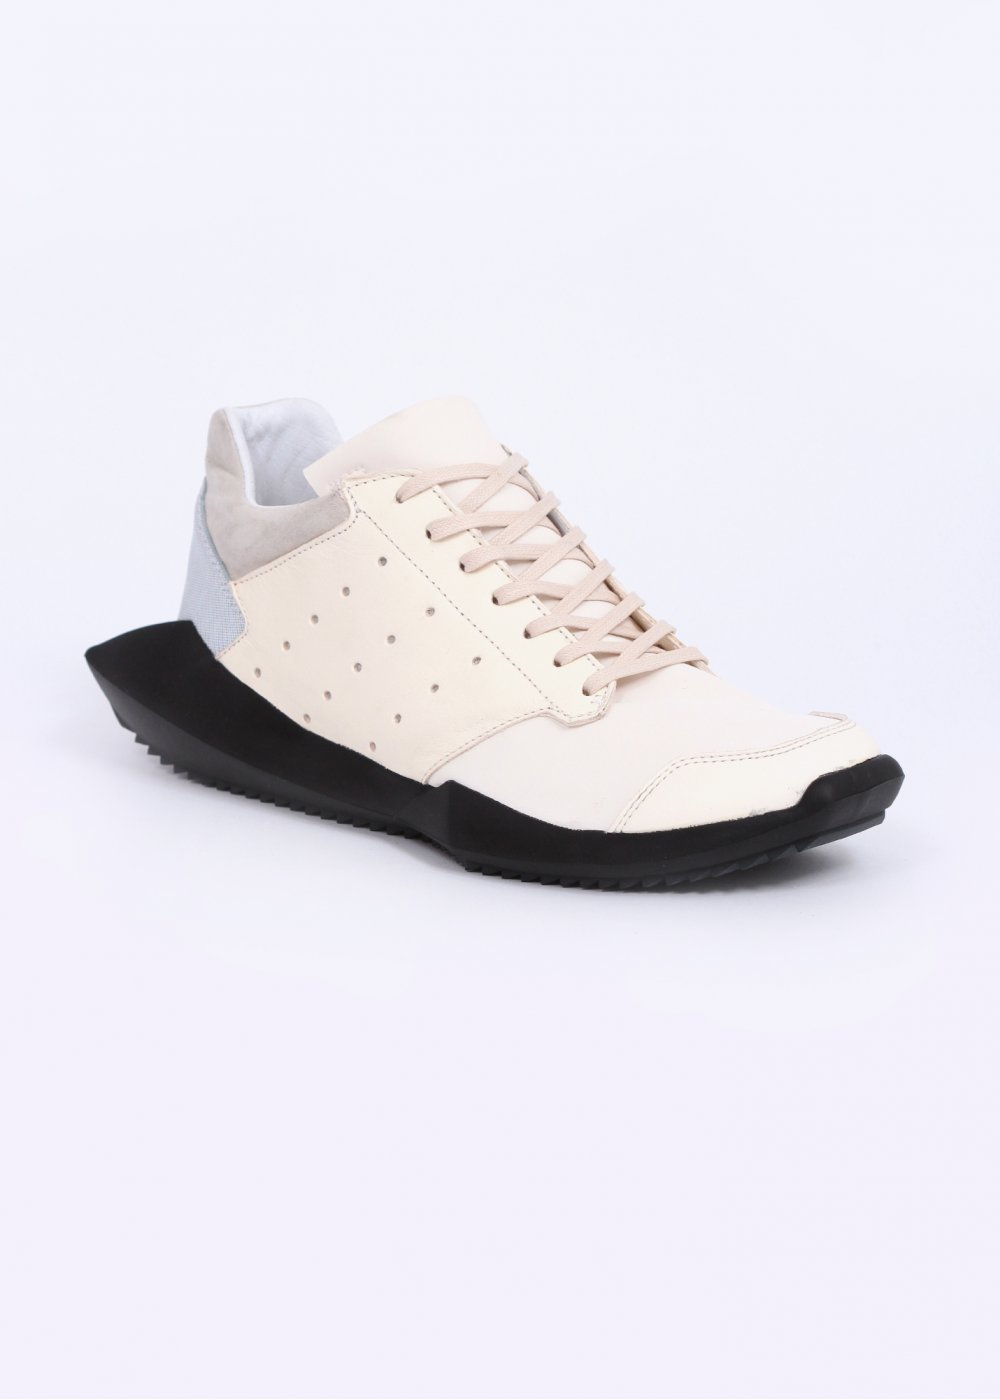 reputable site 45682 6fe0c Tech Runner Trainers - Running White   Black